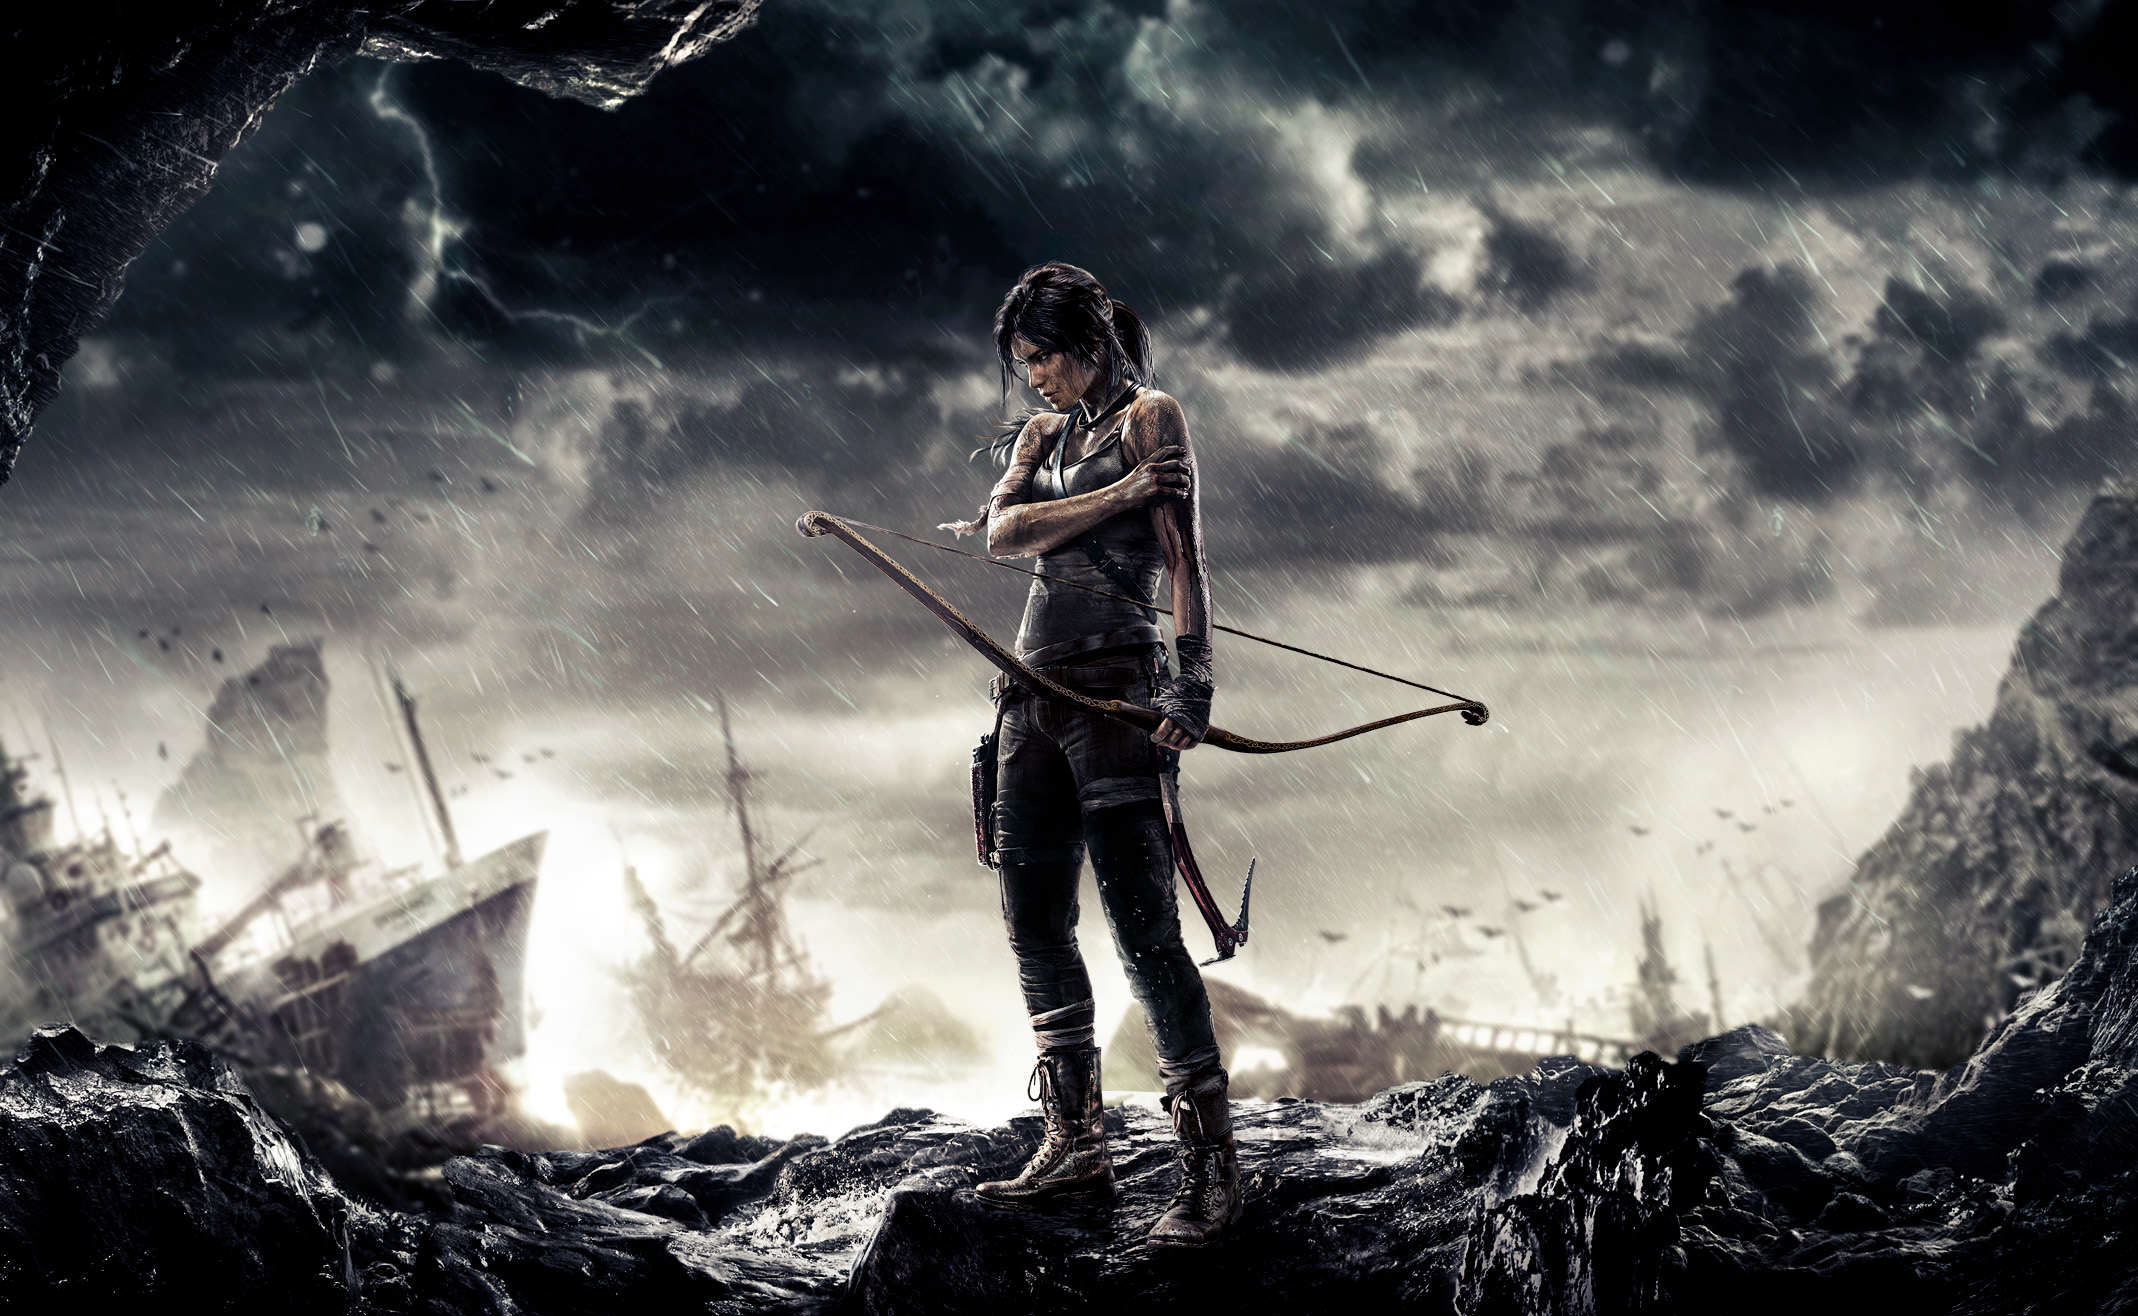 tomb raider wide high definition wallpaper for desktop background Tomb Raider Movie Director Discusses Plans For Reboot